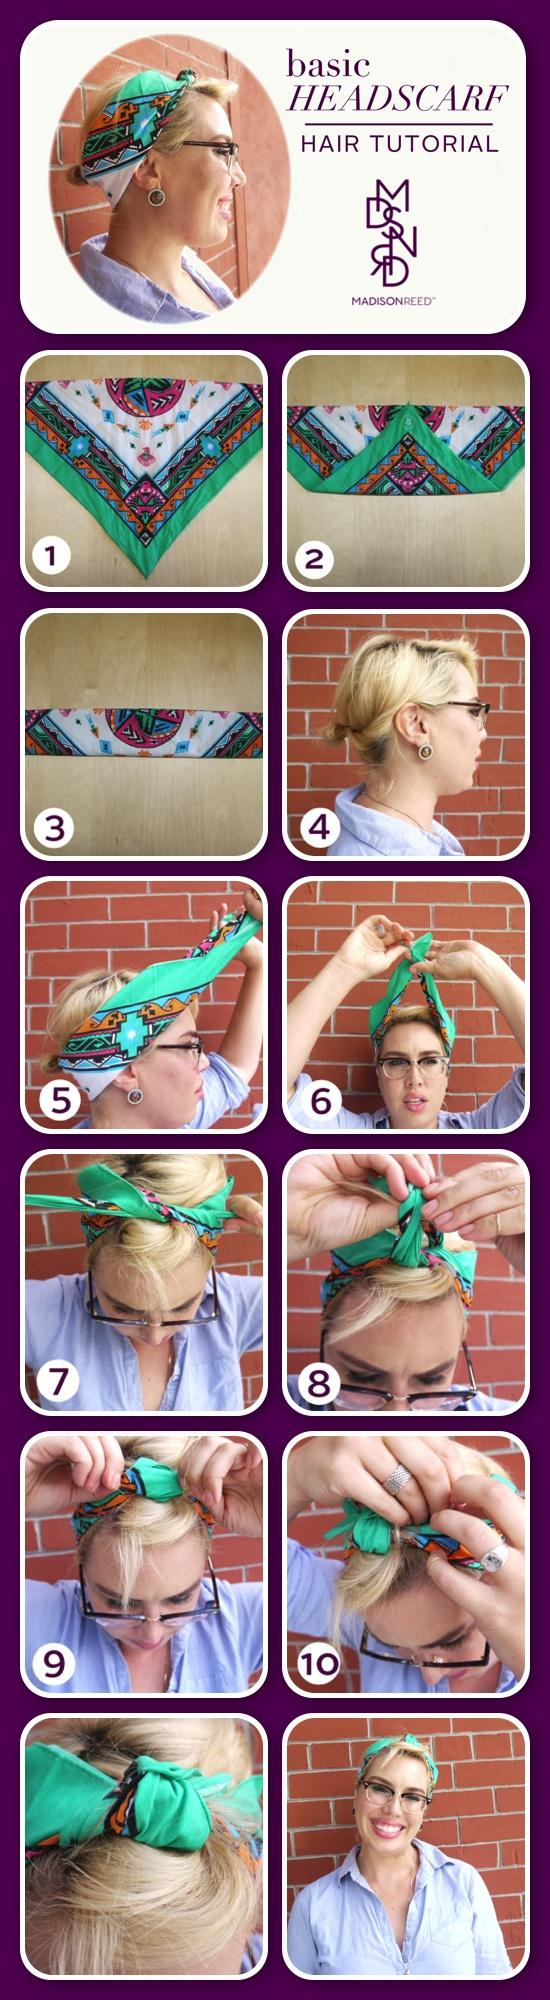 Headscarf Tutorial Layout